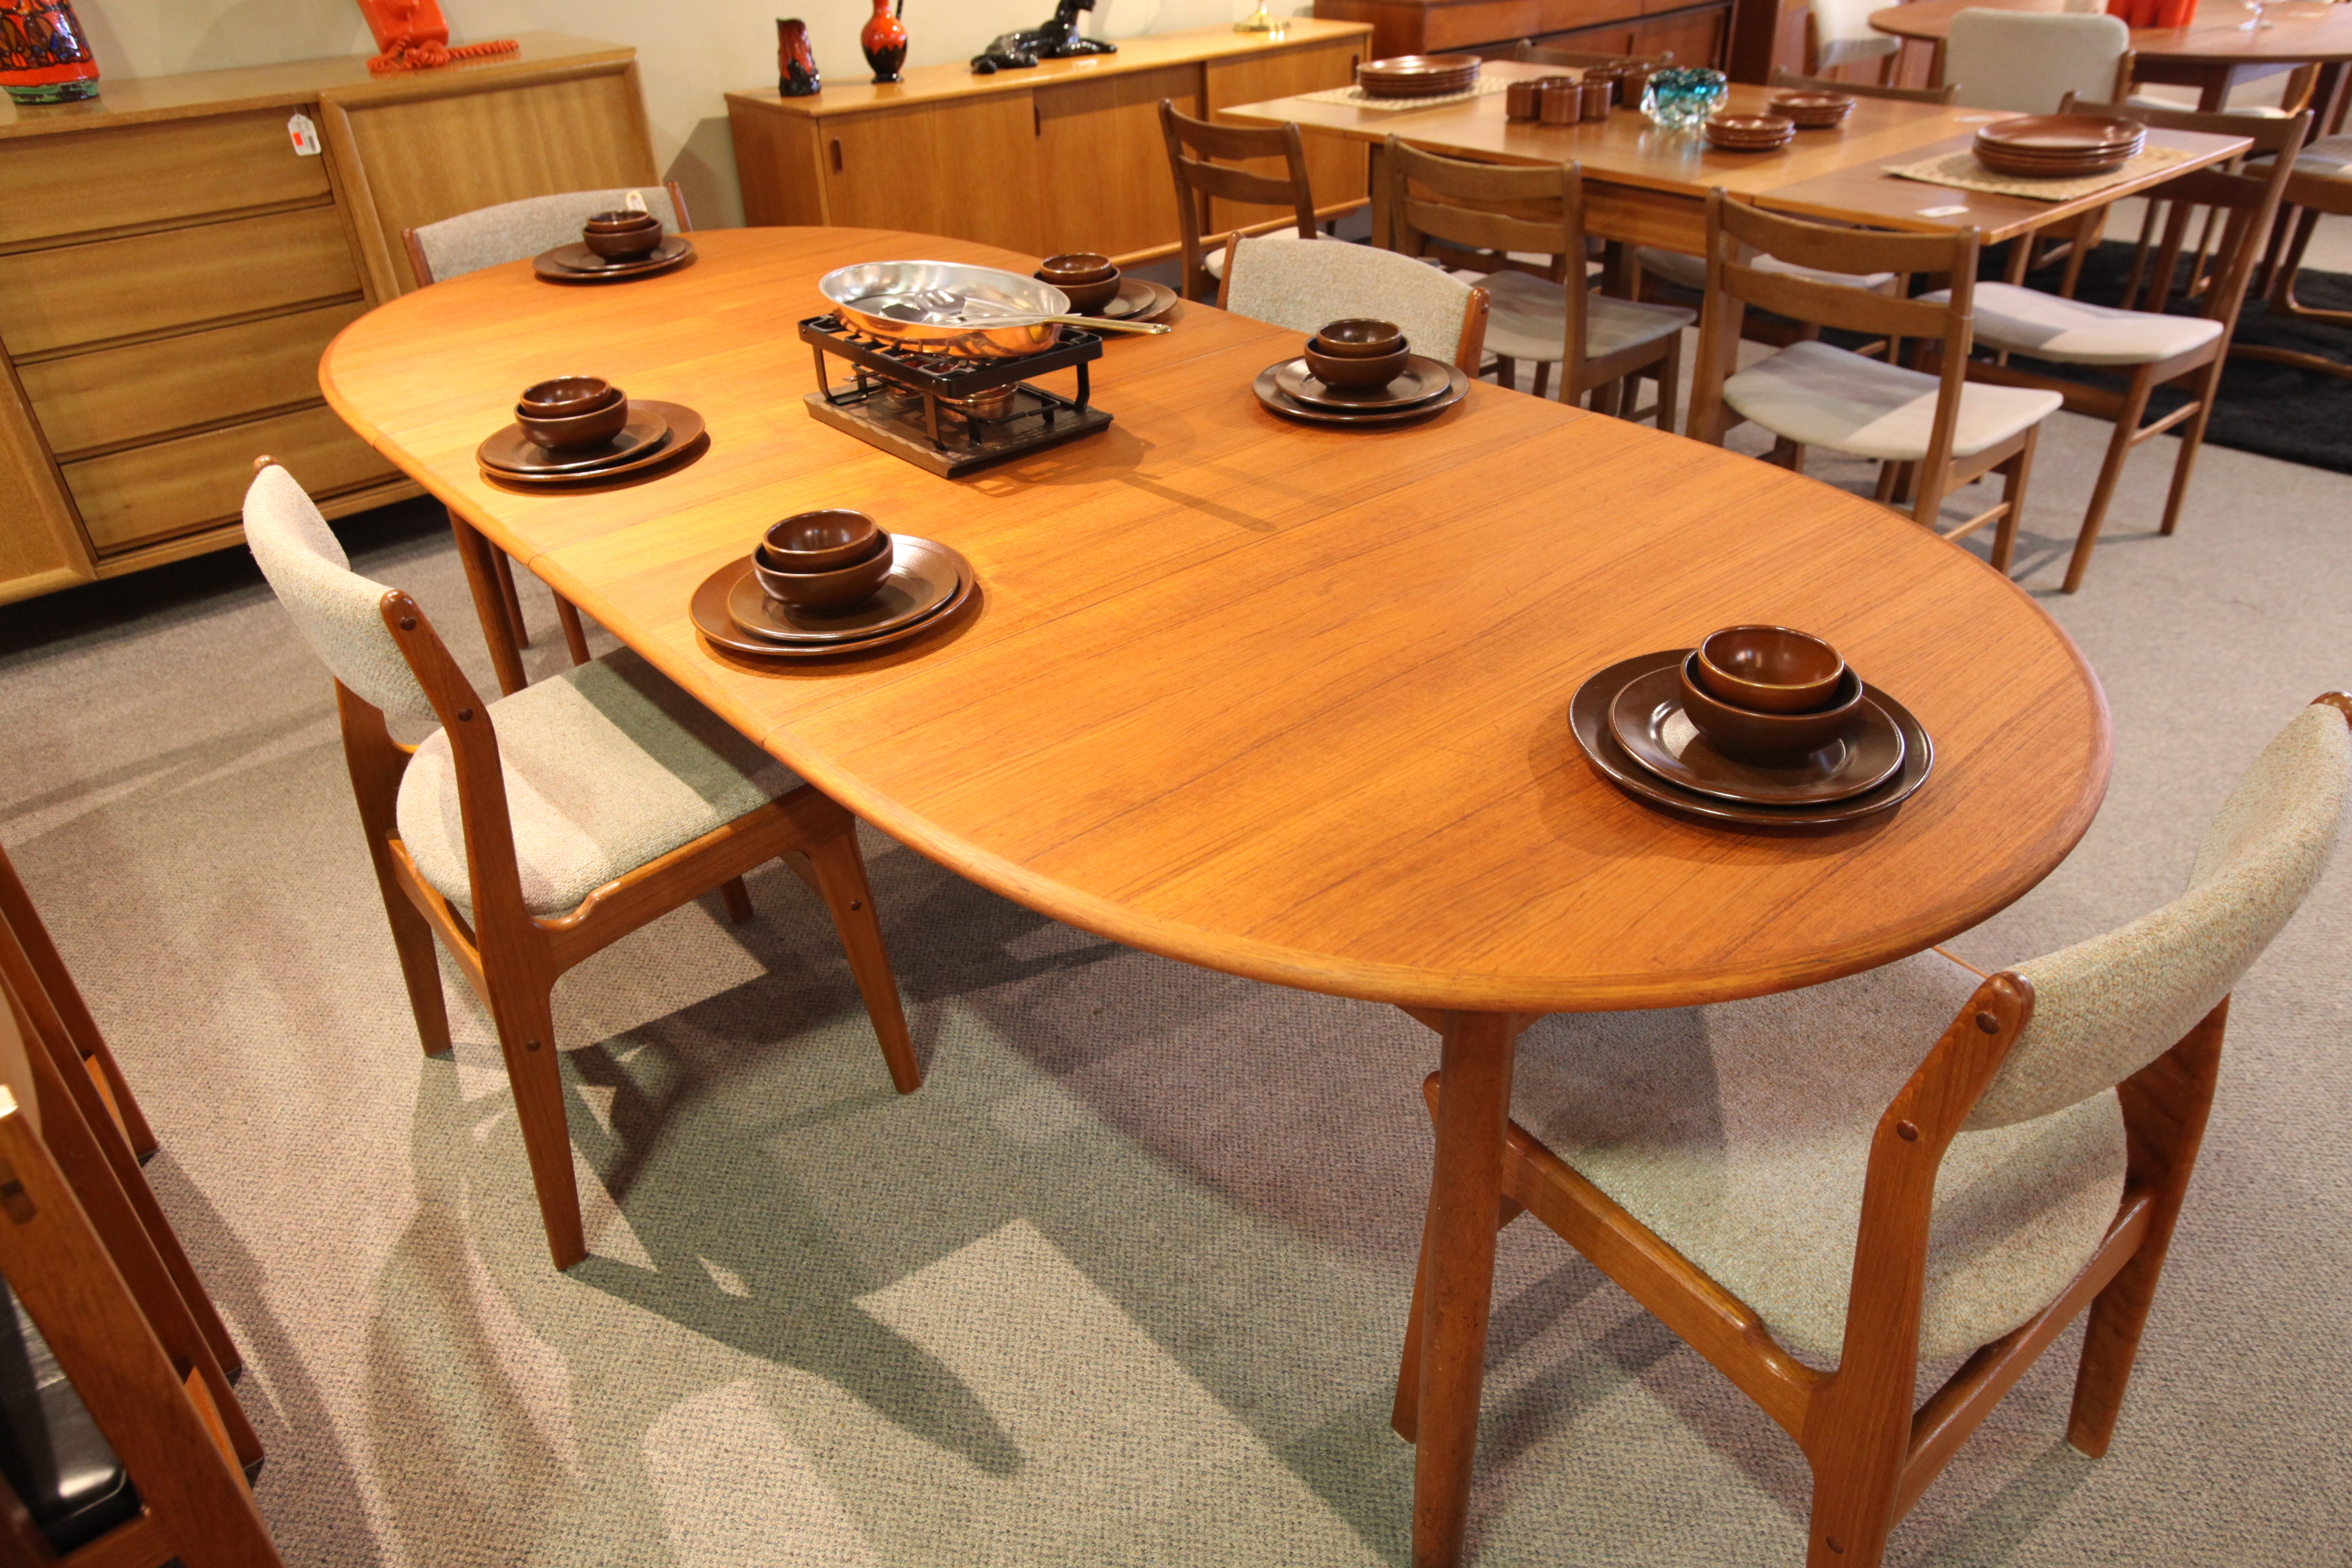 "Vintage Mid Century Danish Teak Dining Table w/2 Leafs (98""x41.5"") (59""x41.5"")"